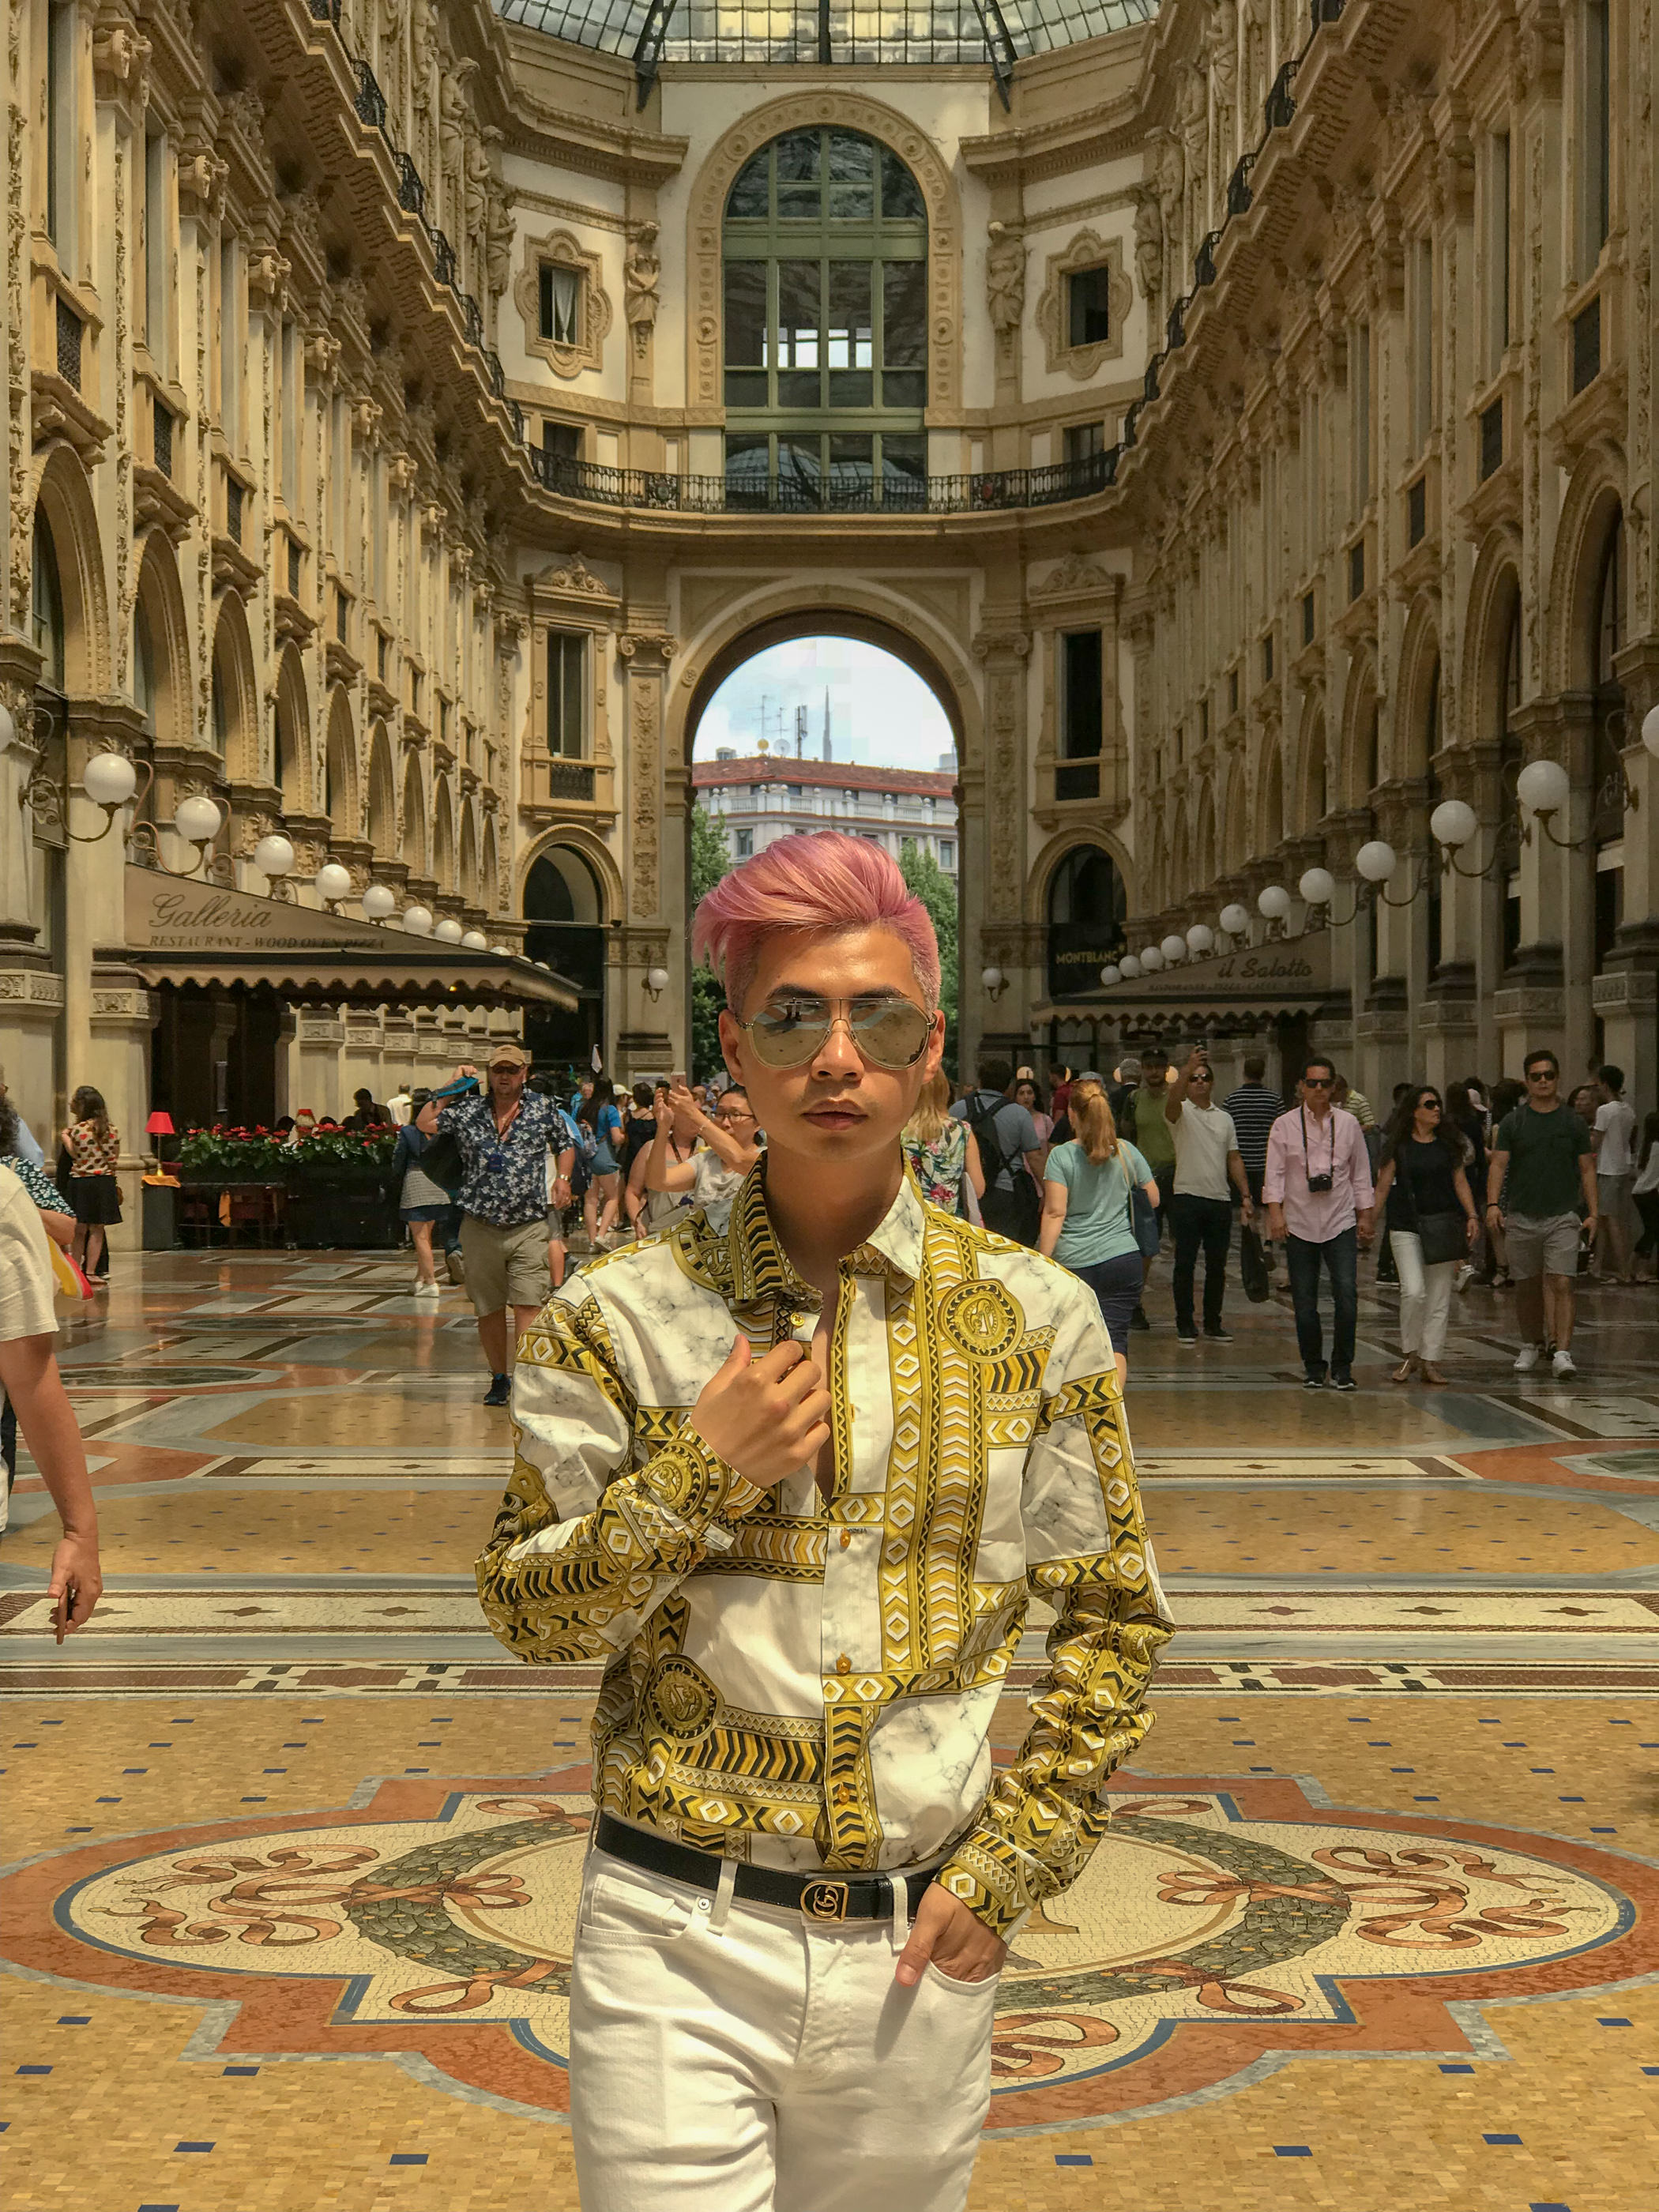 MYBELONGING-TOMMYLEI-TOP-MENS-BLOGGER-INFLUENCER-CREATIVE-AT-THE-DUOMO-MILAN-TRAVEL-PHOTOGRAPHY-VERSACE-GUCCI-PRADA-STREETSTYLE13.jpg